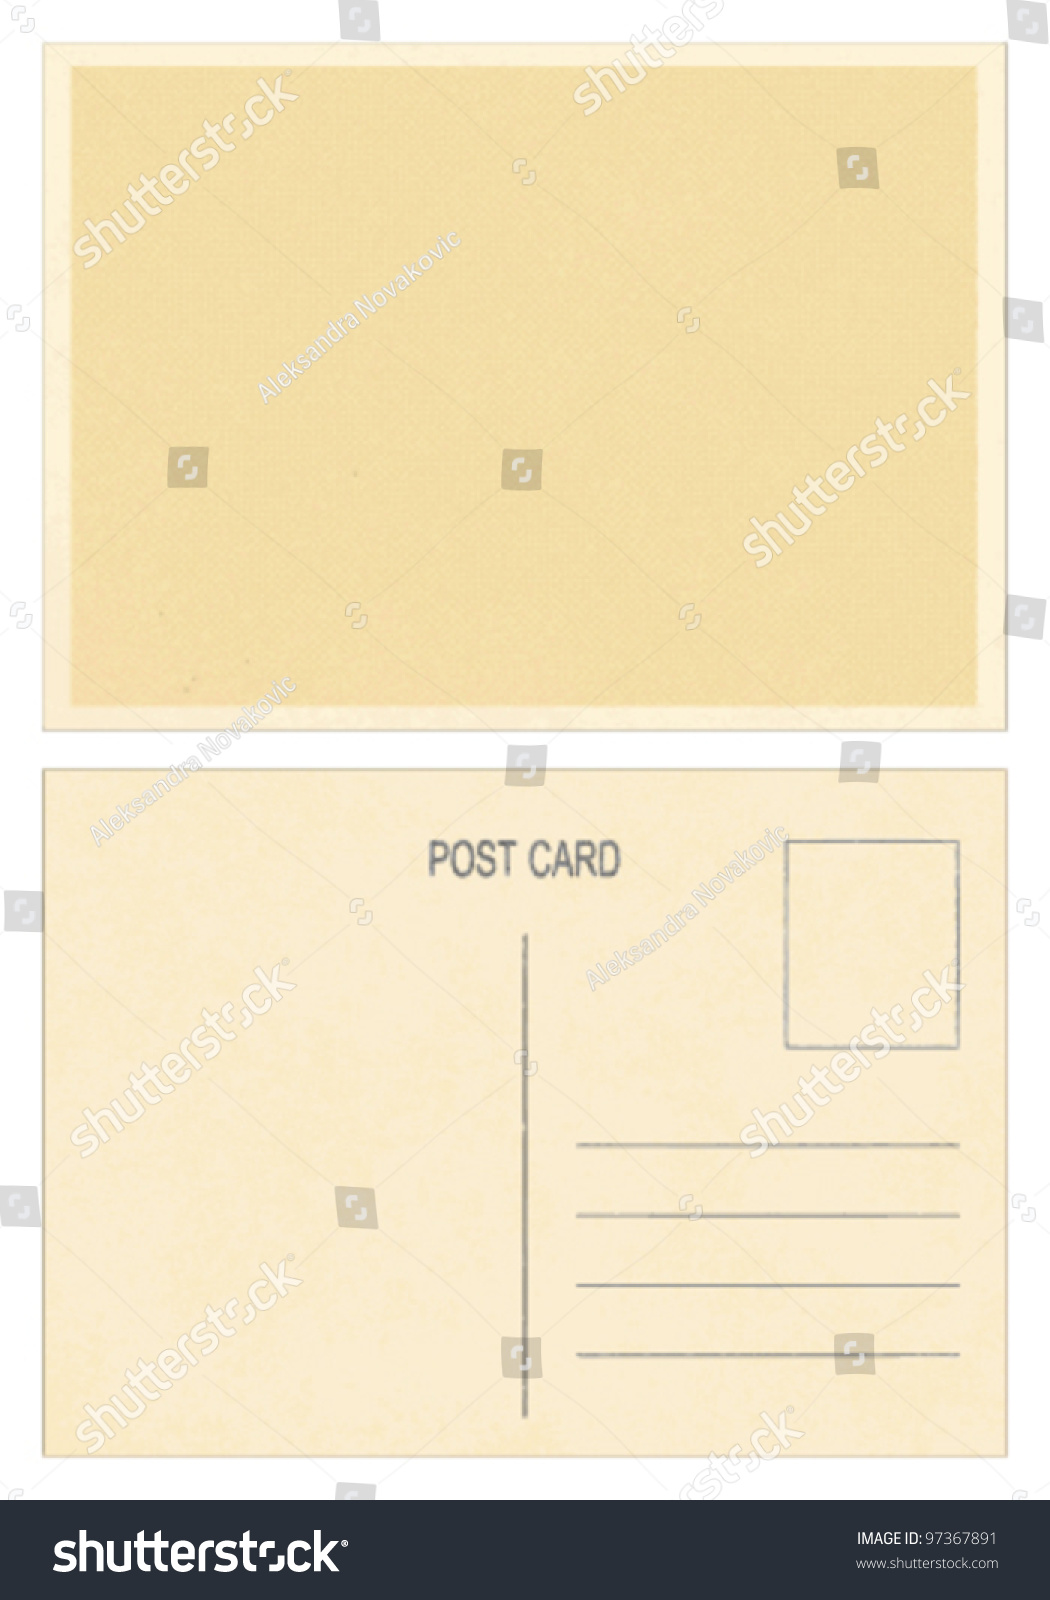 blank vintage postcard front back side stock vector royalty free